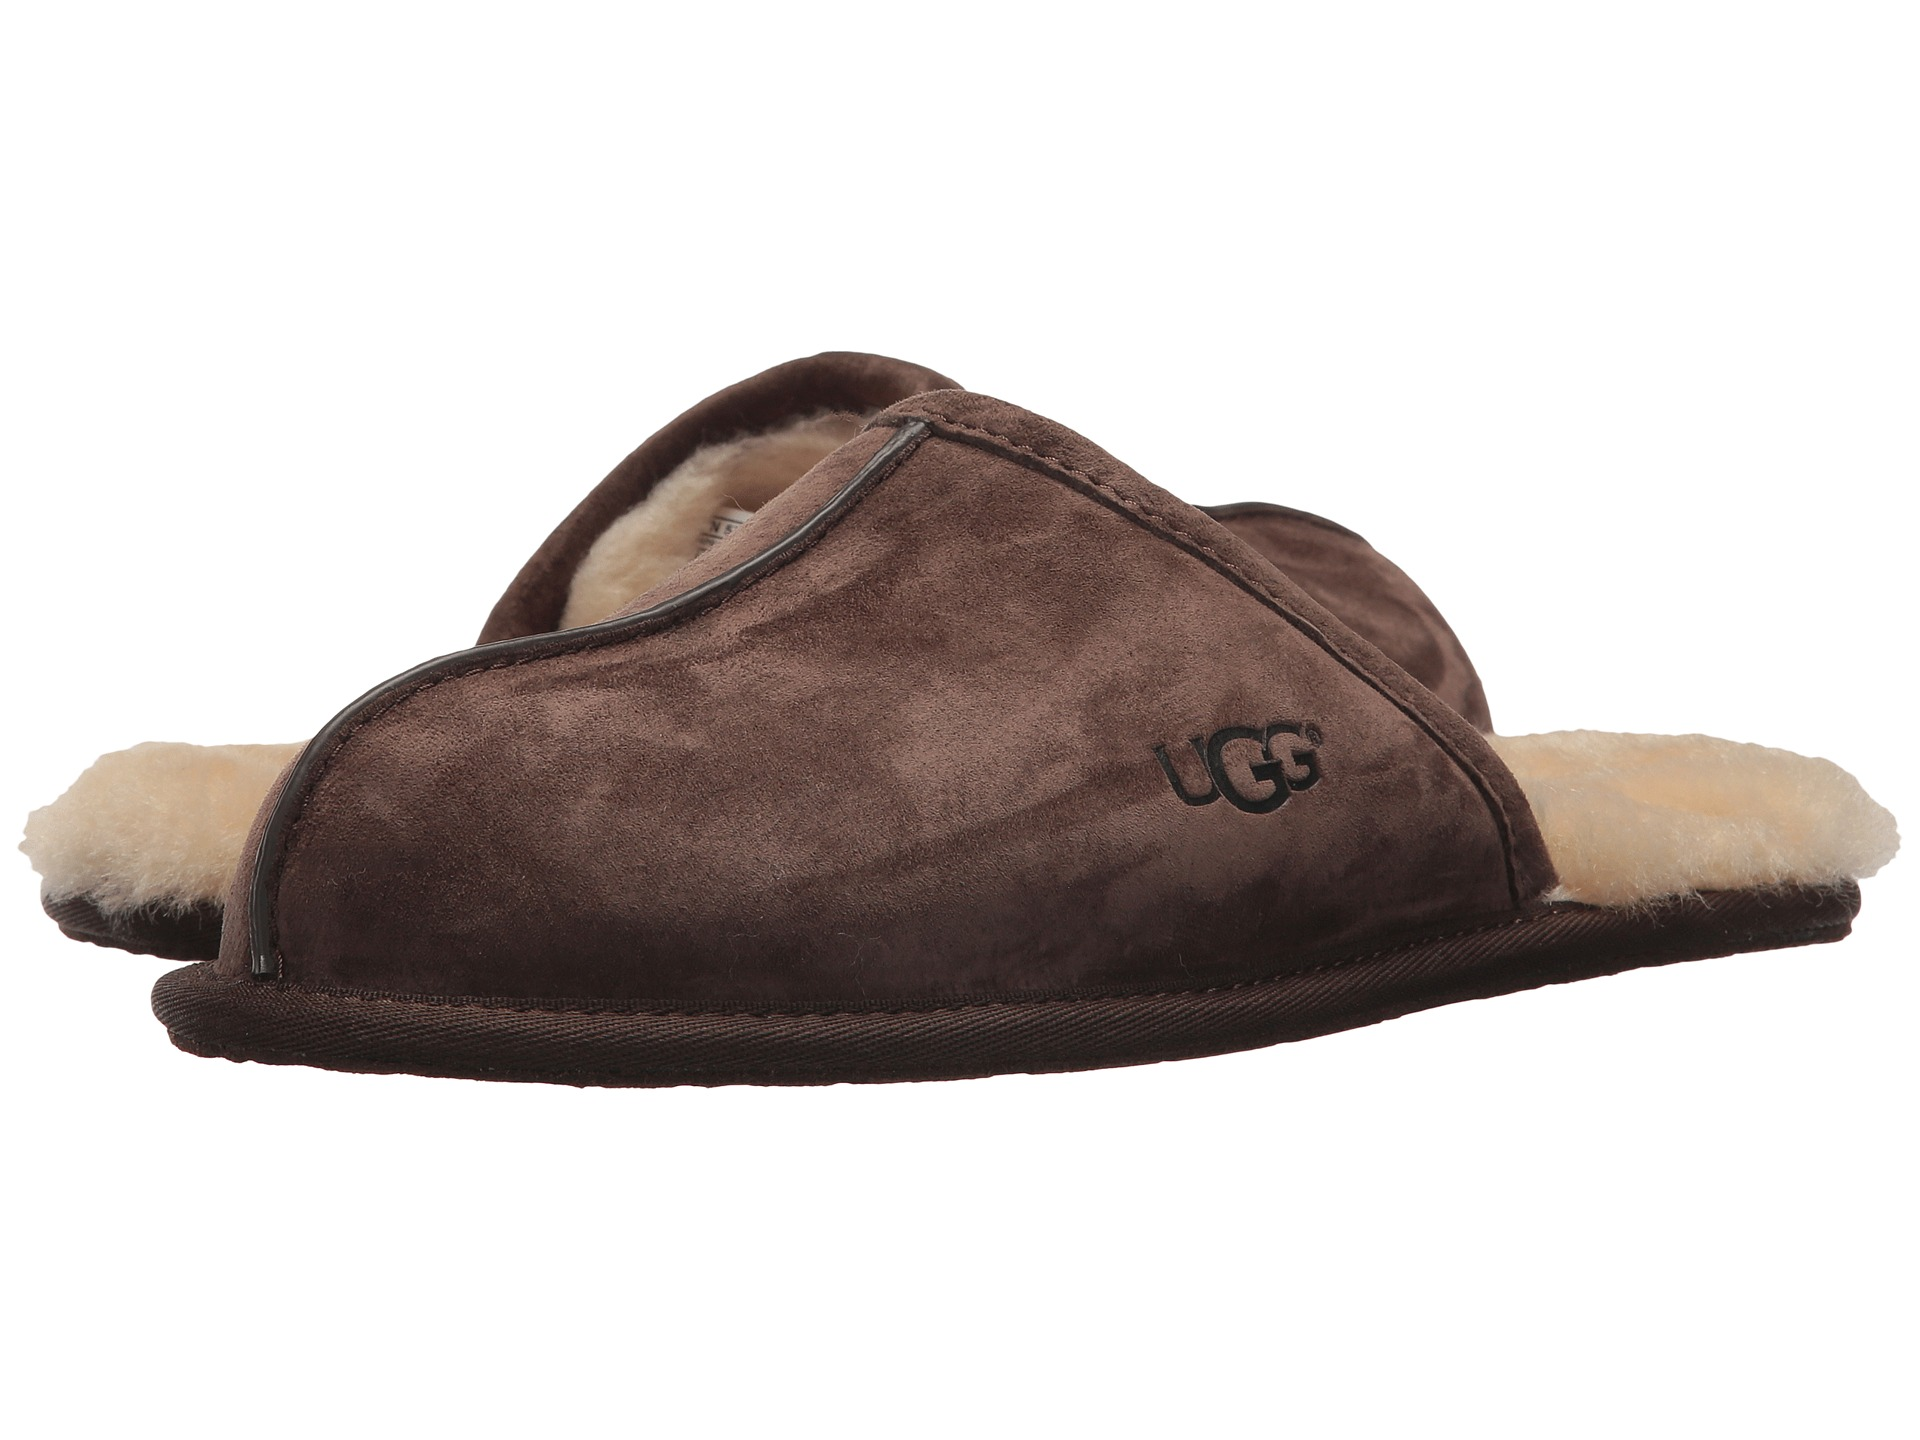 37312d03c39 Zappos Ugg Slippers - cheap watches mgc-gas.com